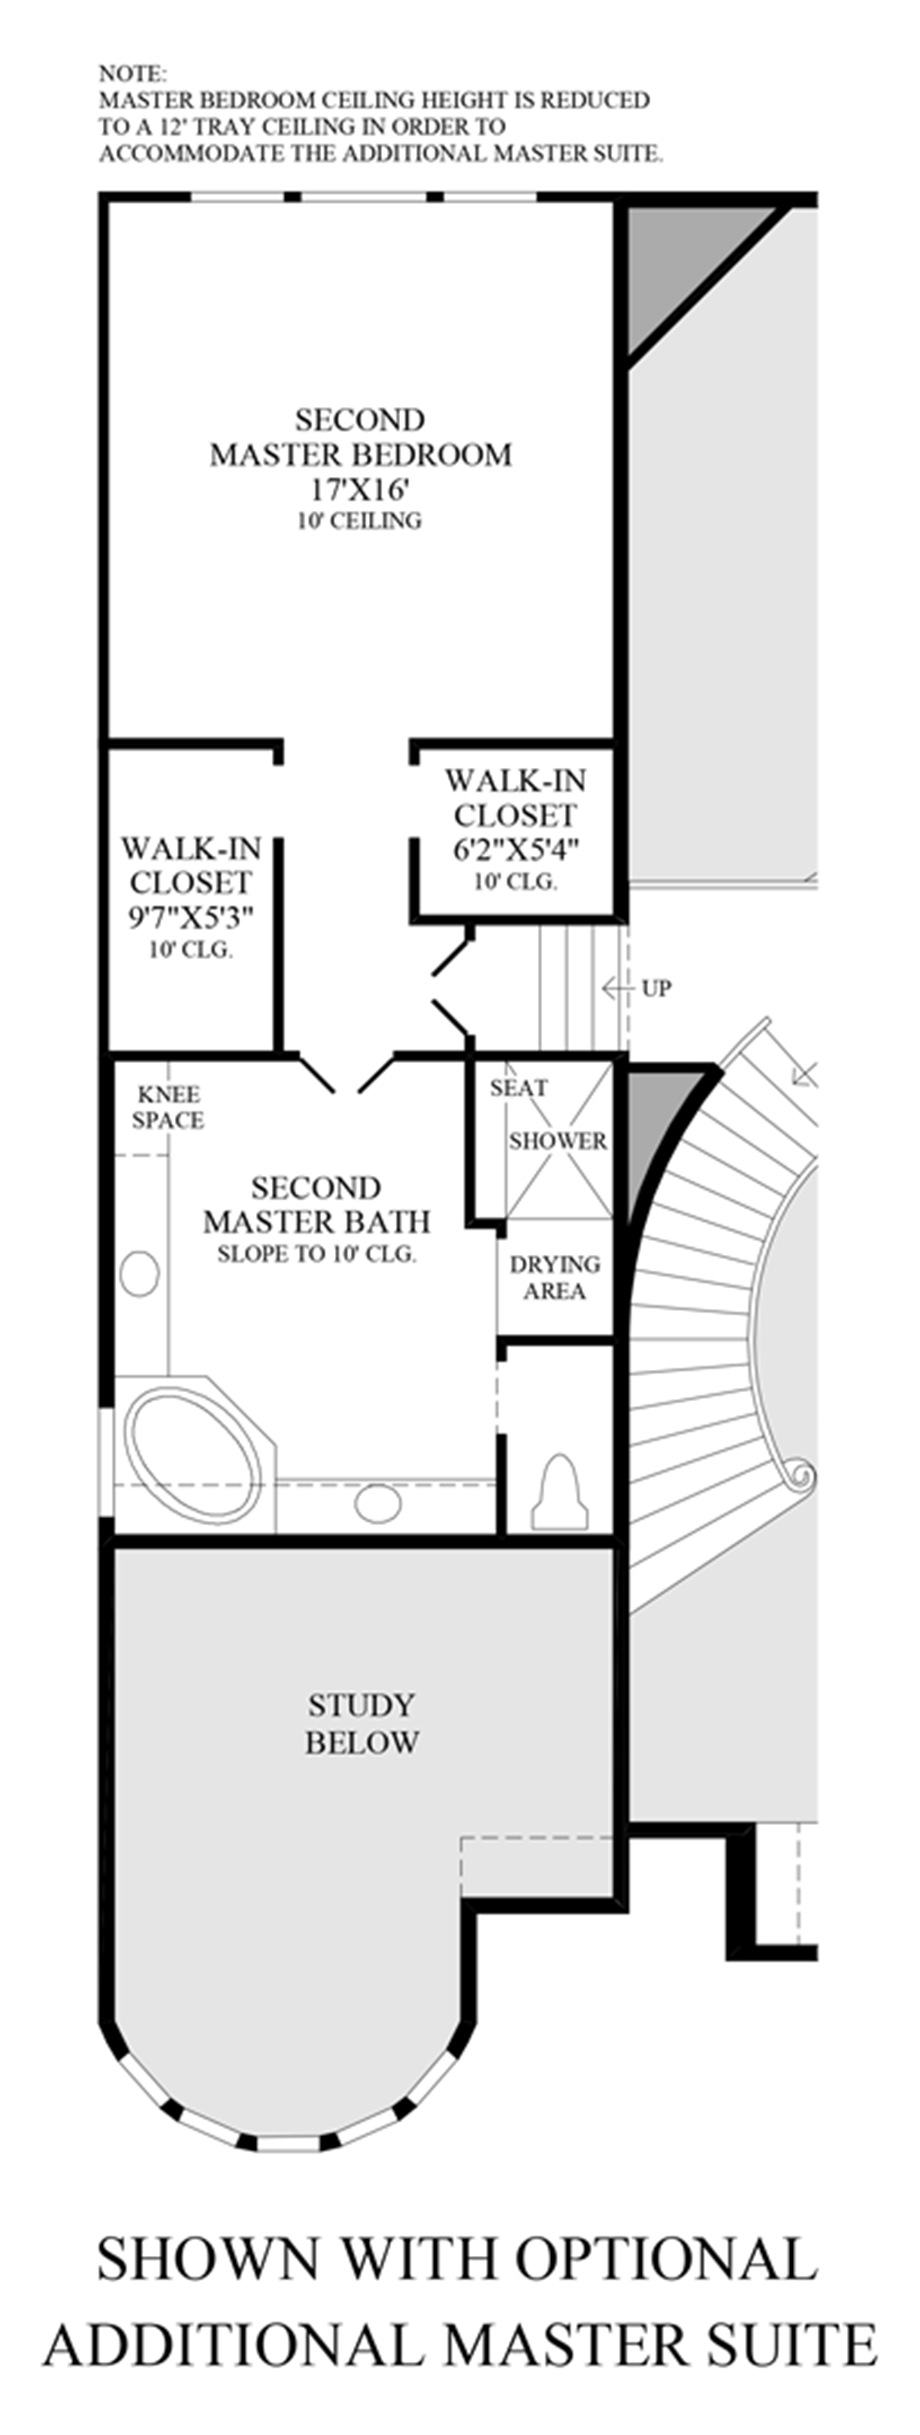 Optional Additional Master Suite Floor Plan